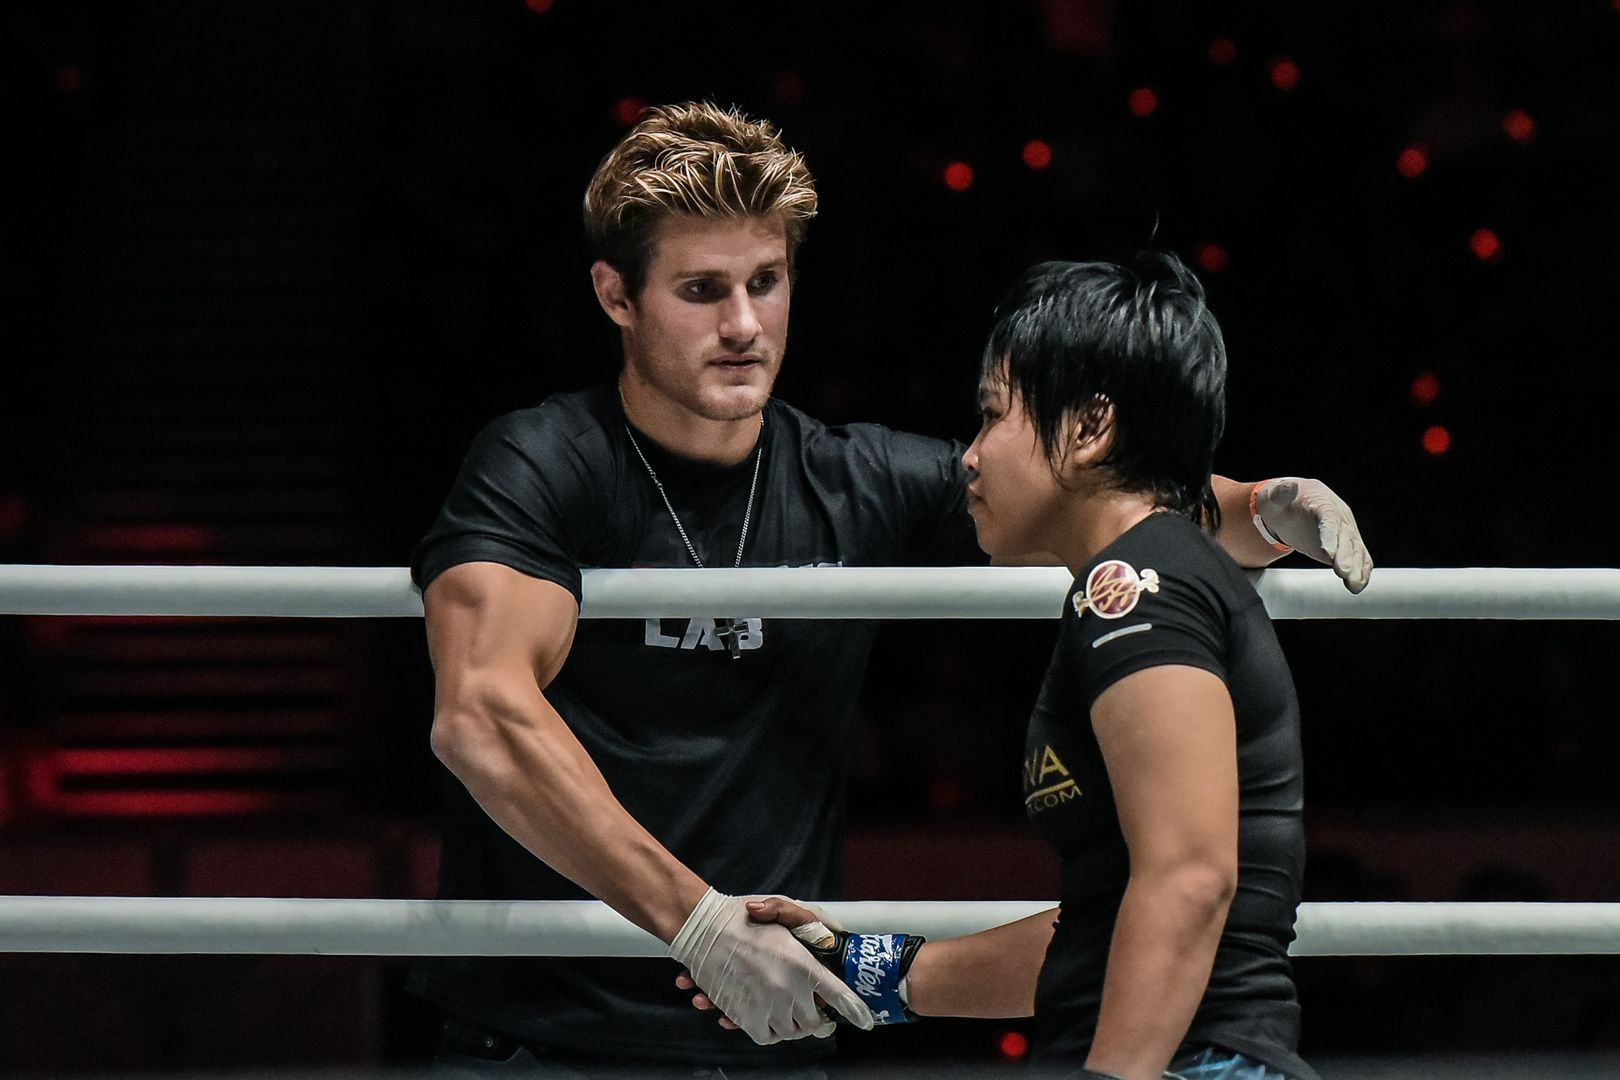 Sage Northcutt shakes Putri Padmi's hand after his sister, Colbey Northcutt, defeats her